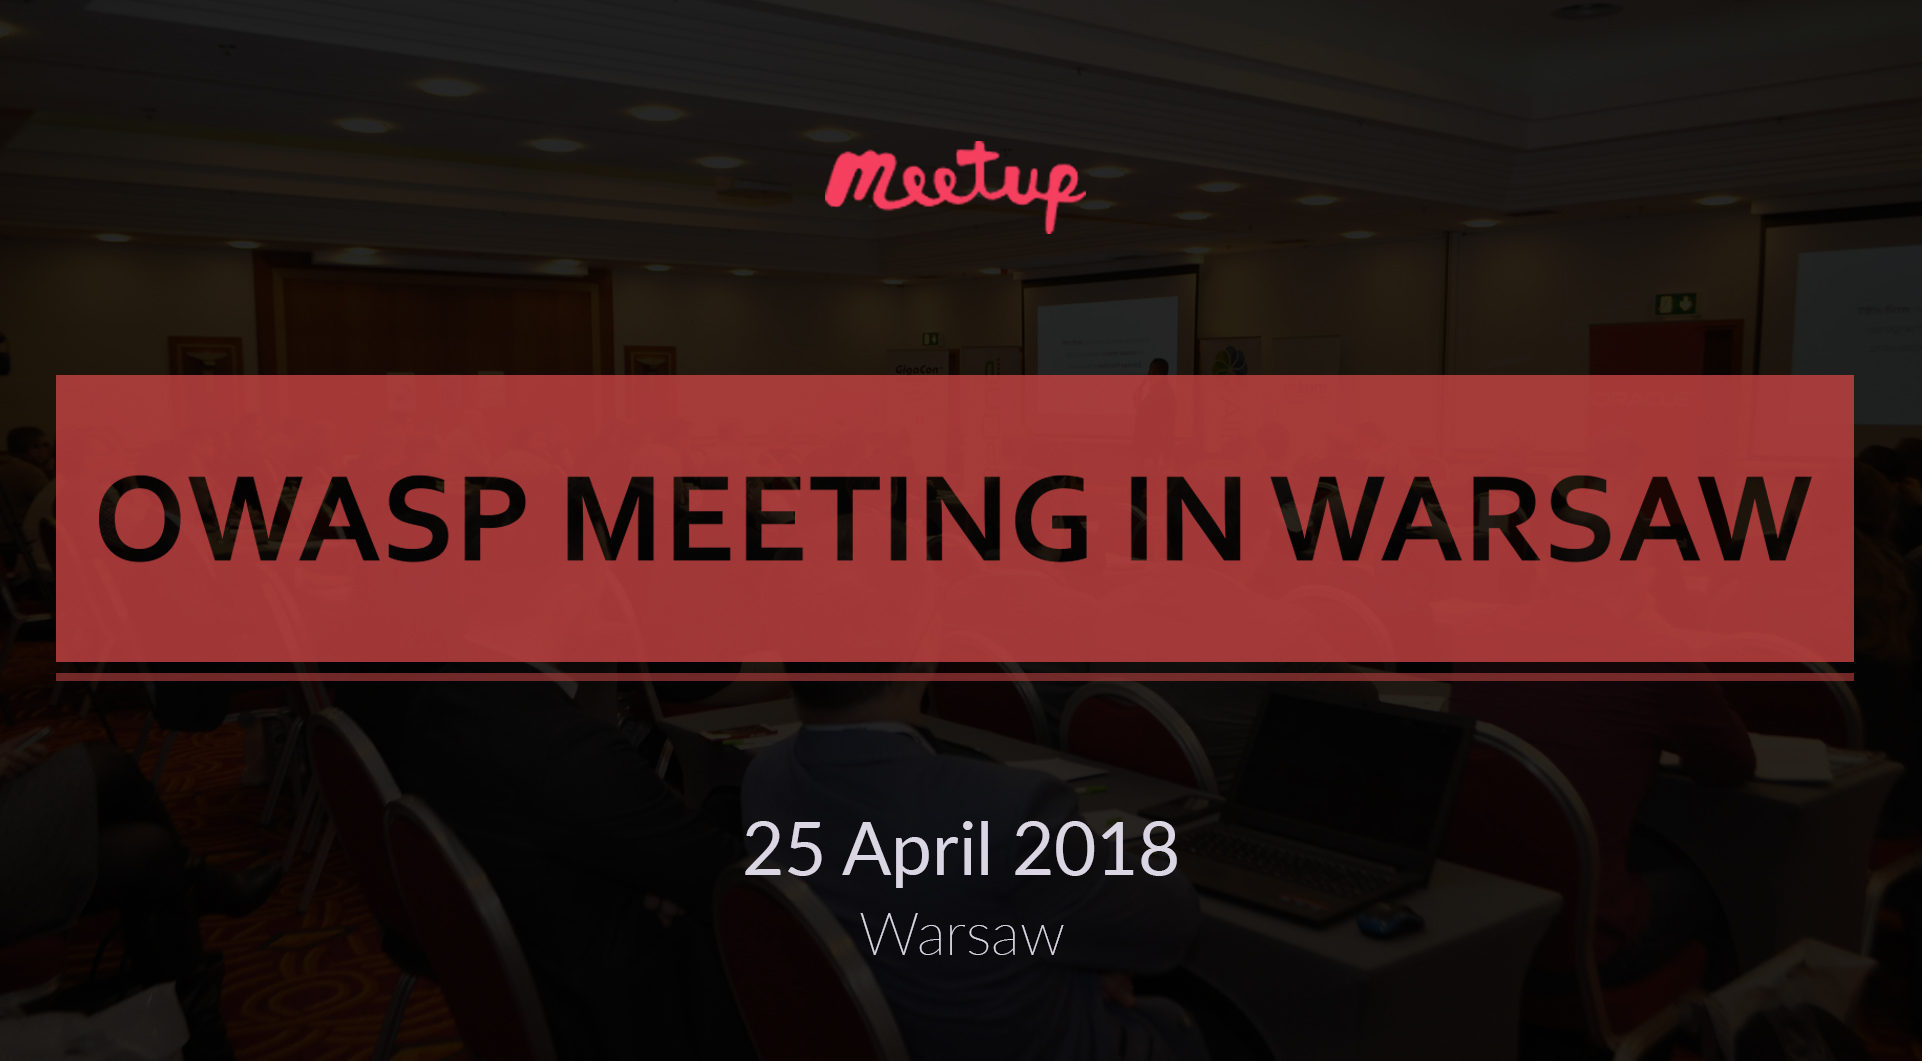 OWASP meeting in Warsaw